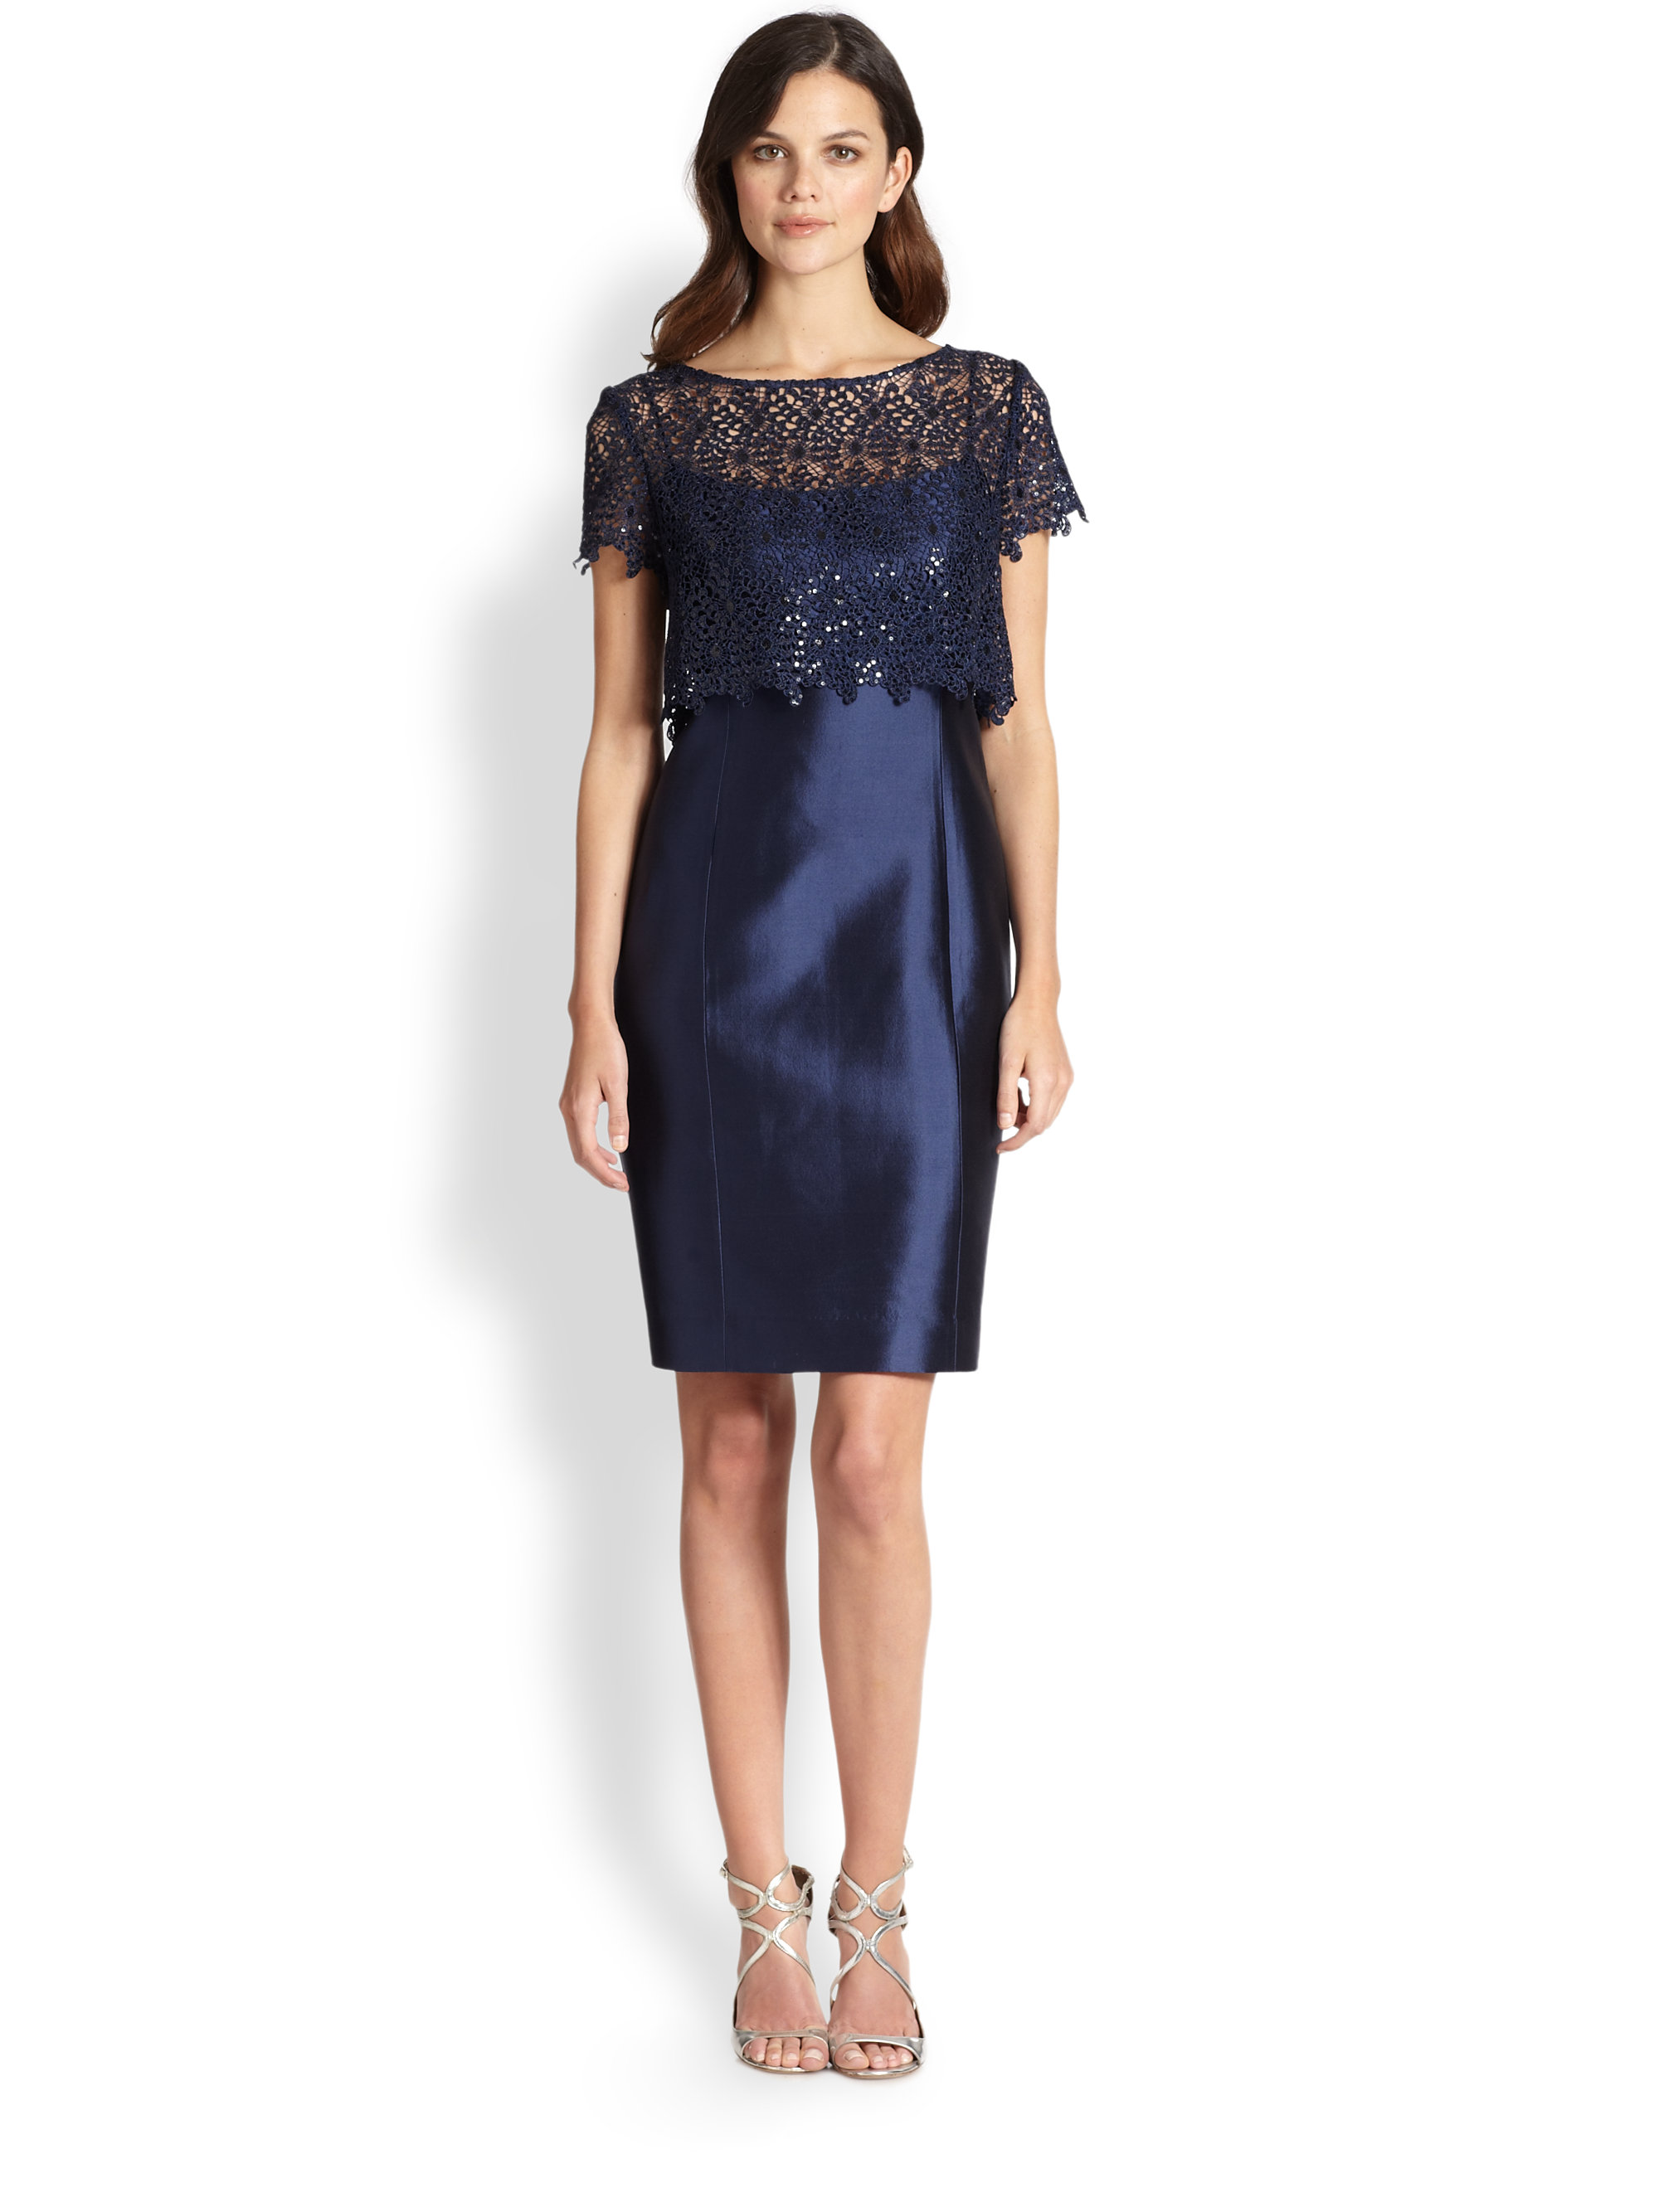 Galerry sheath dress navy